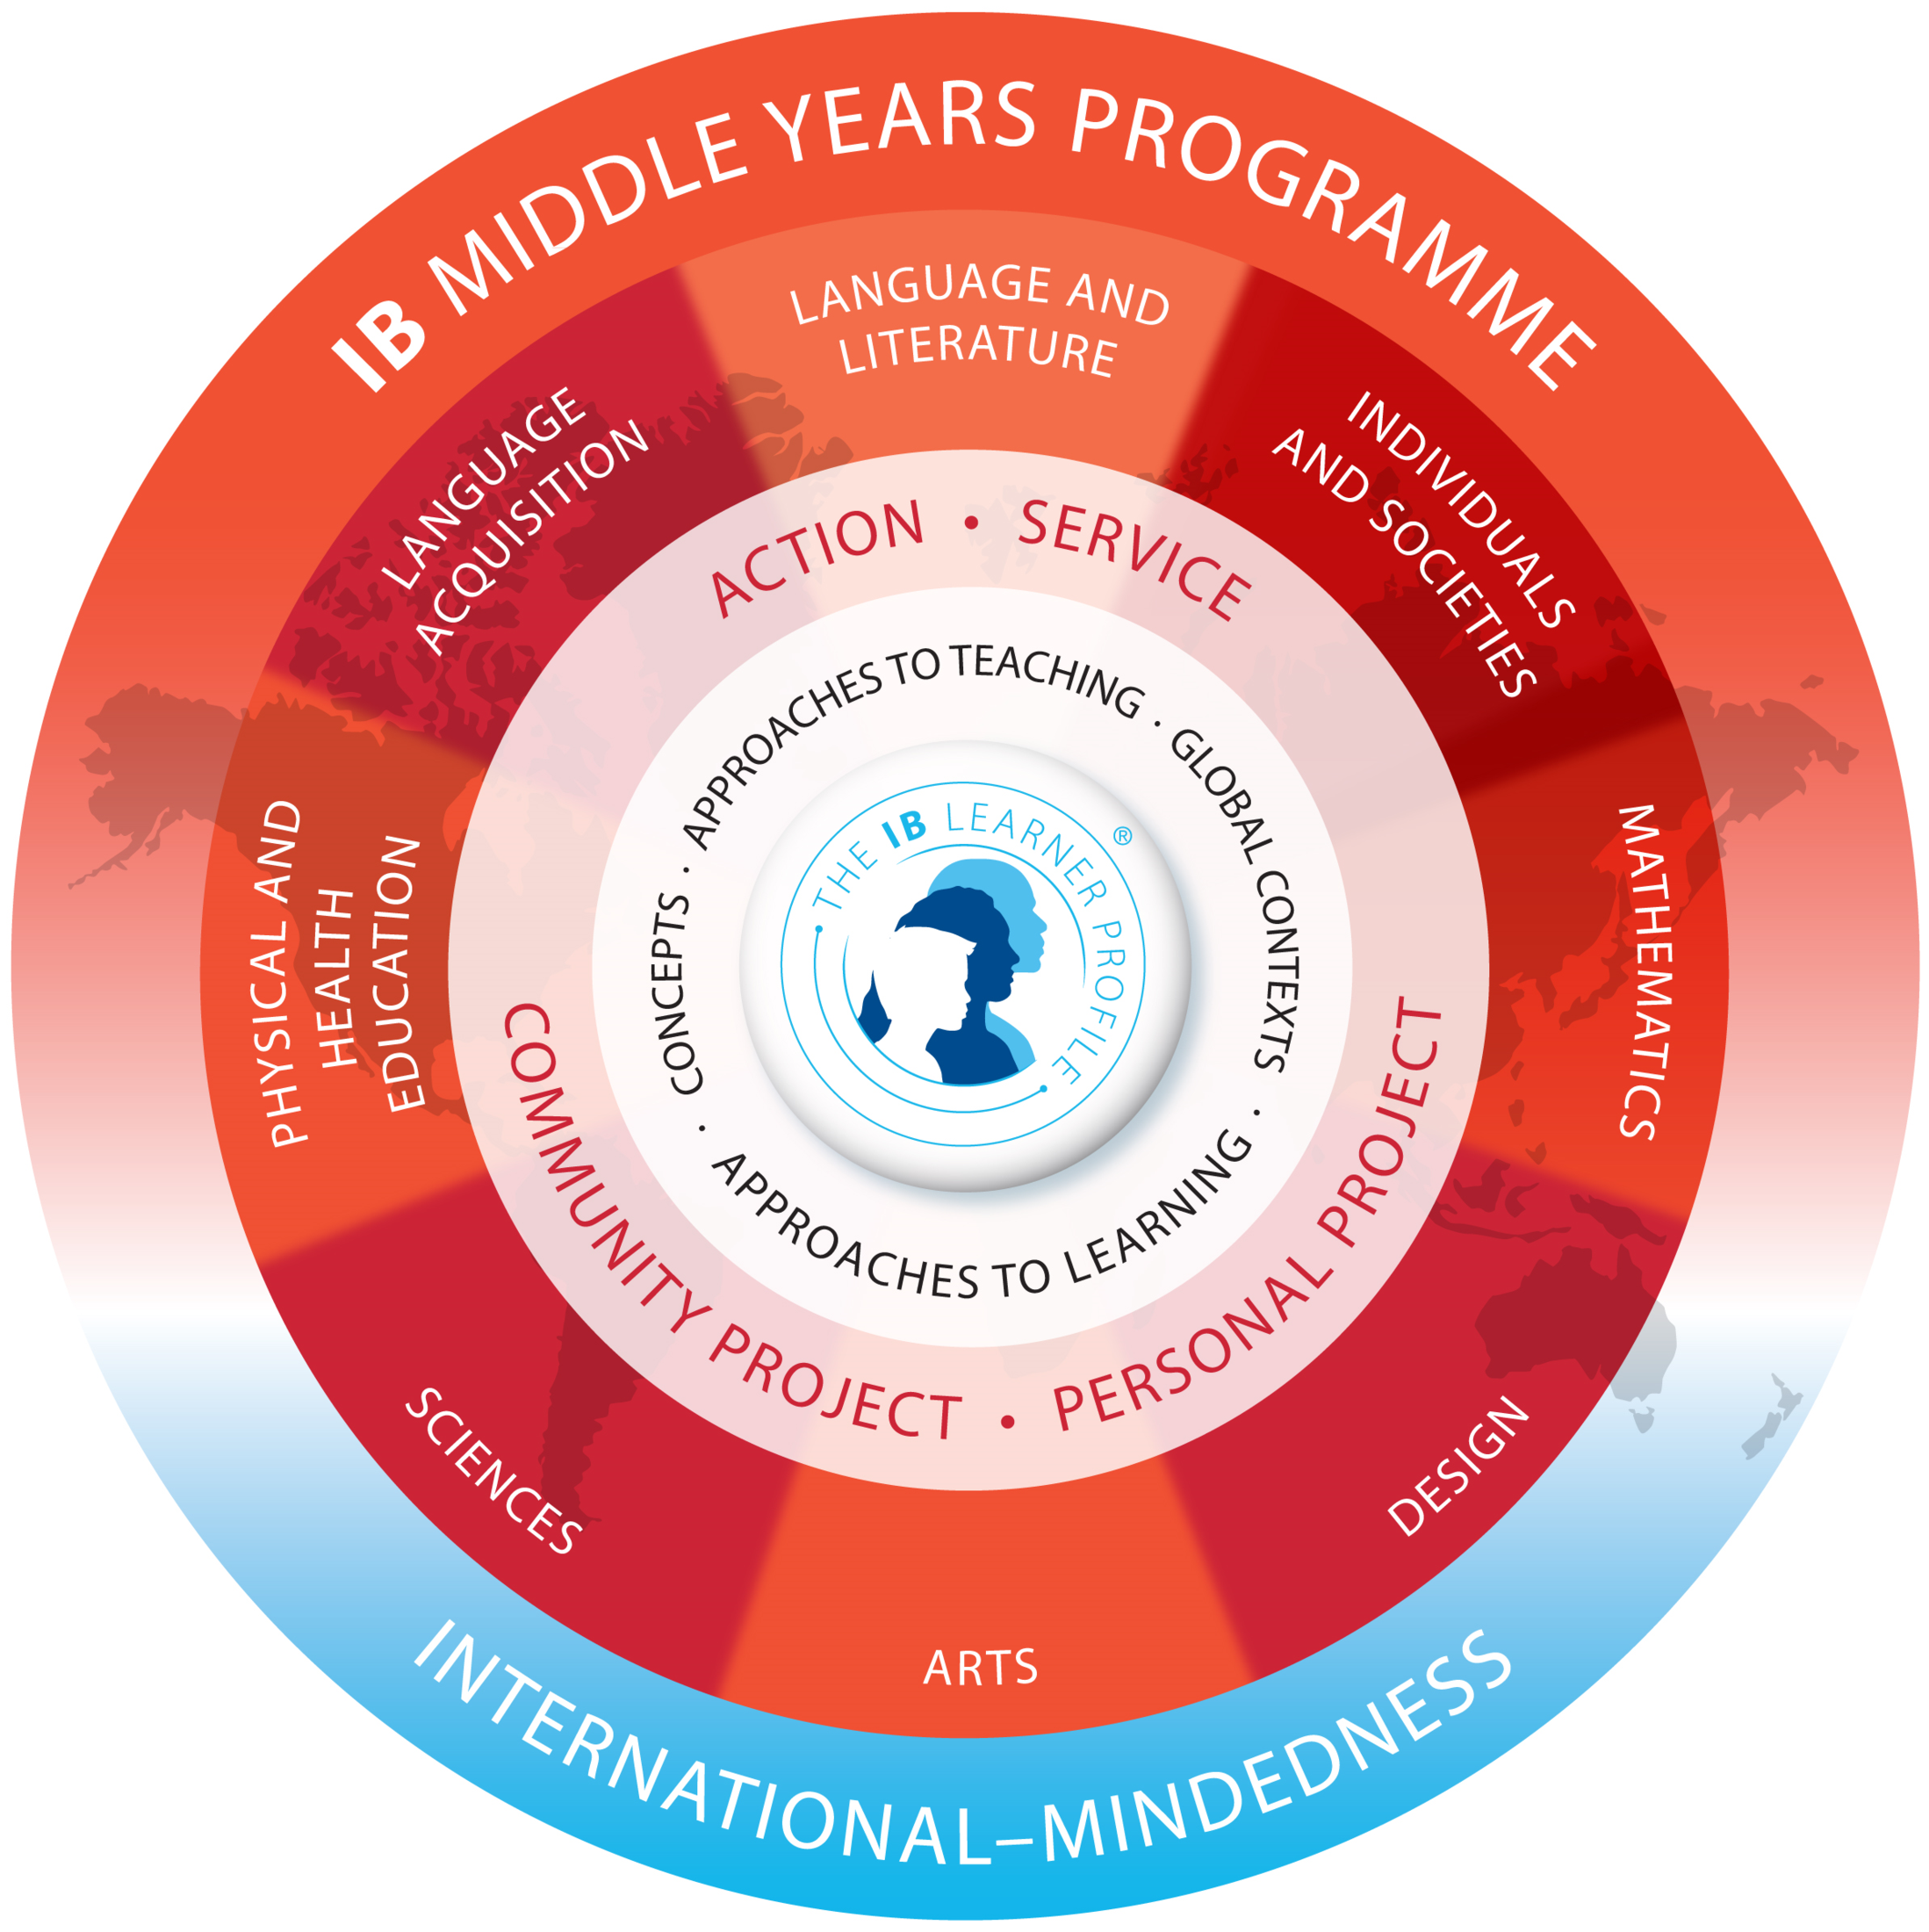 IB Middle Years Programme approaches to learning, concepts and approaches to teaching wheel.